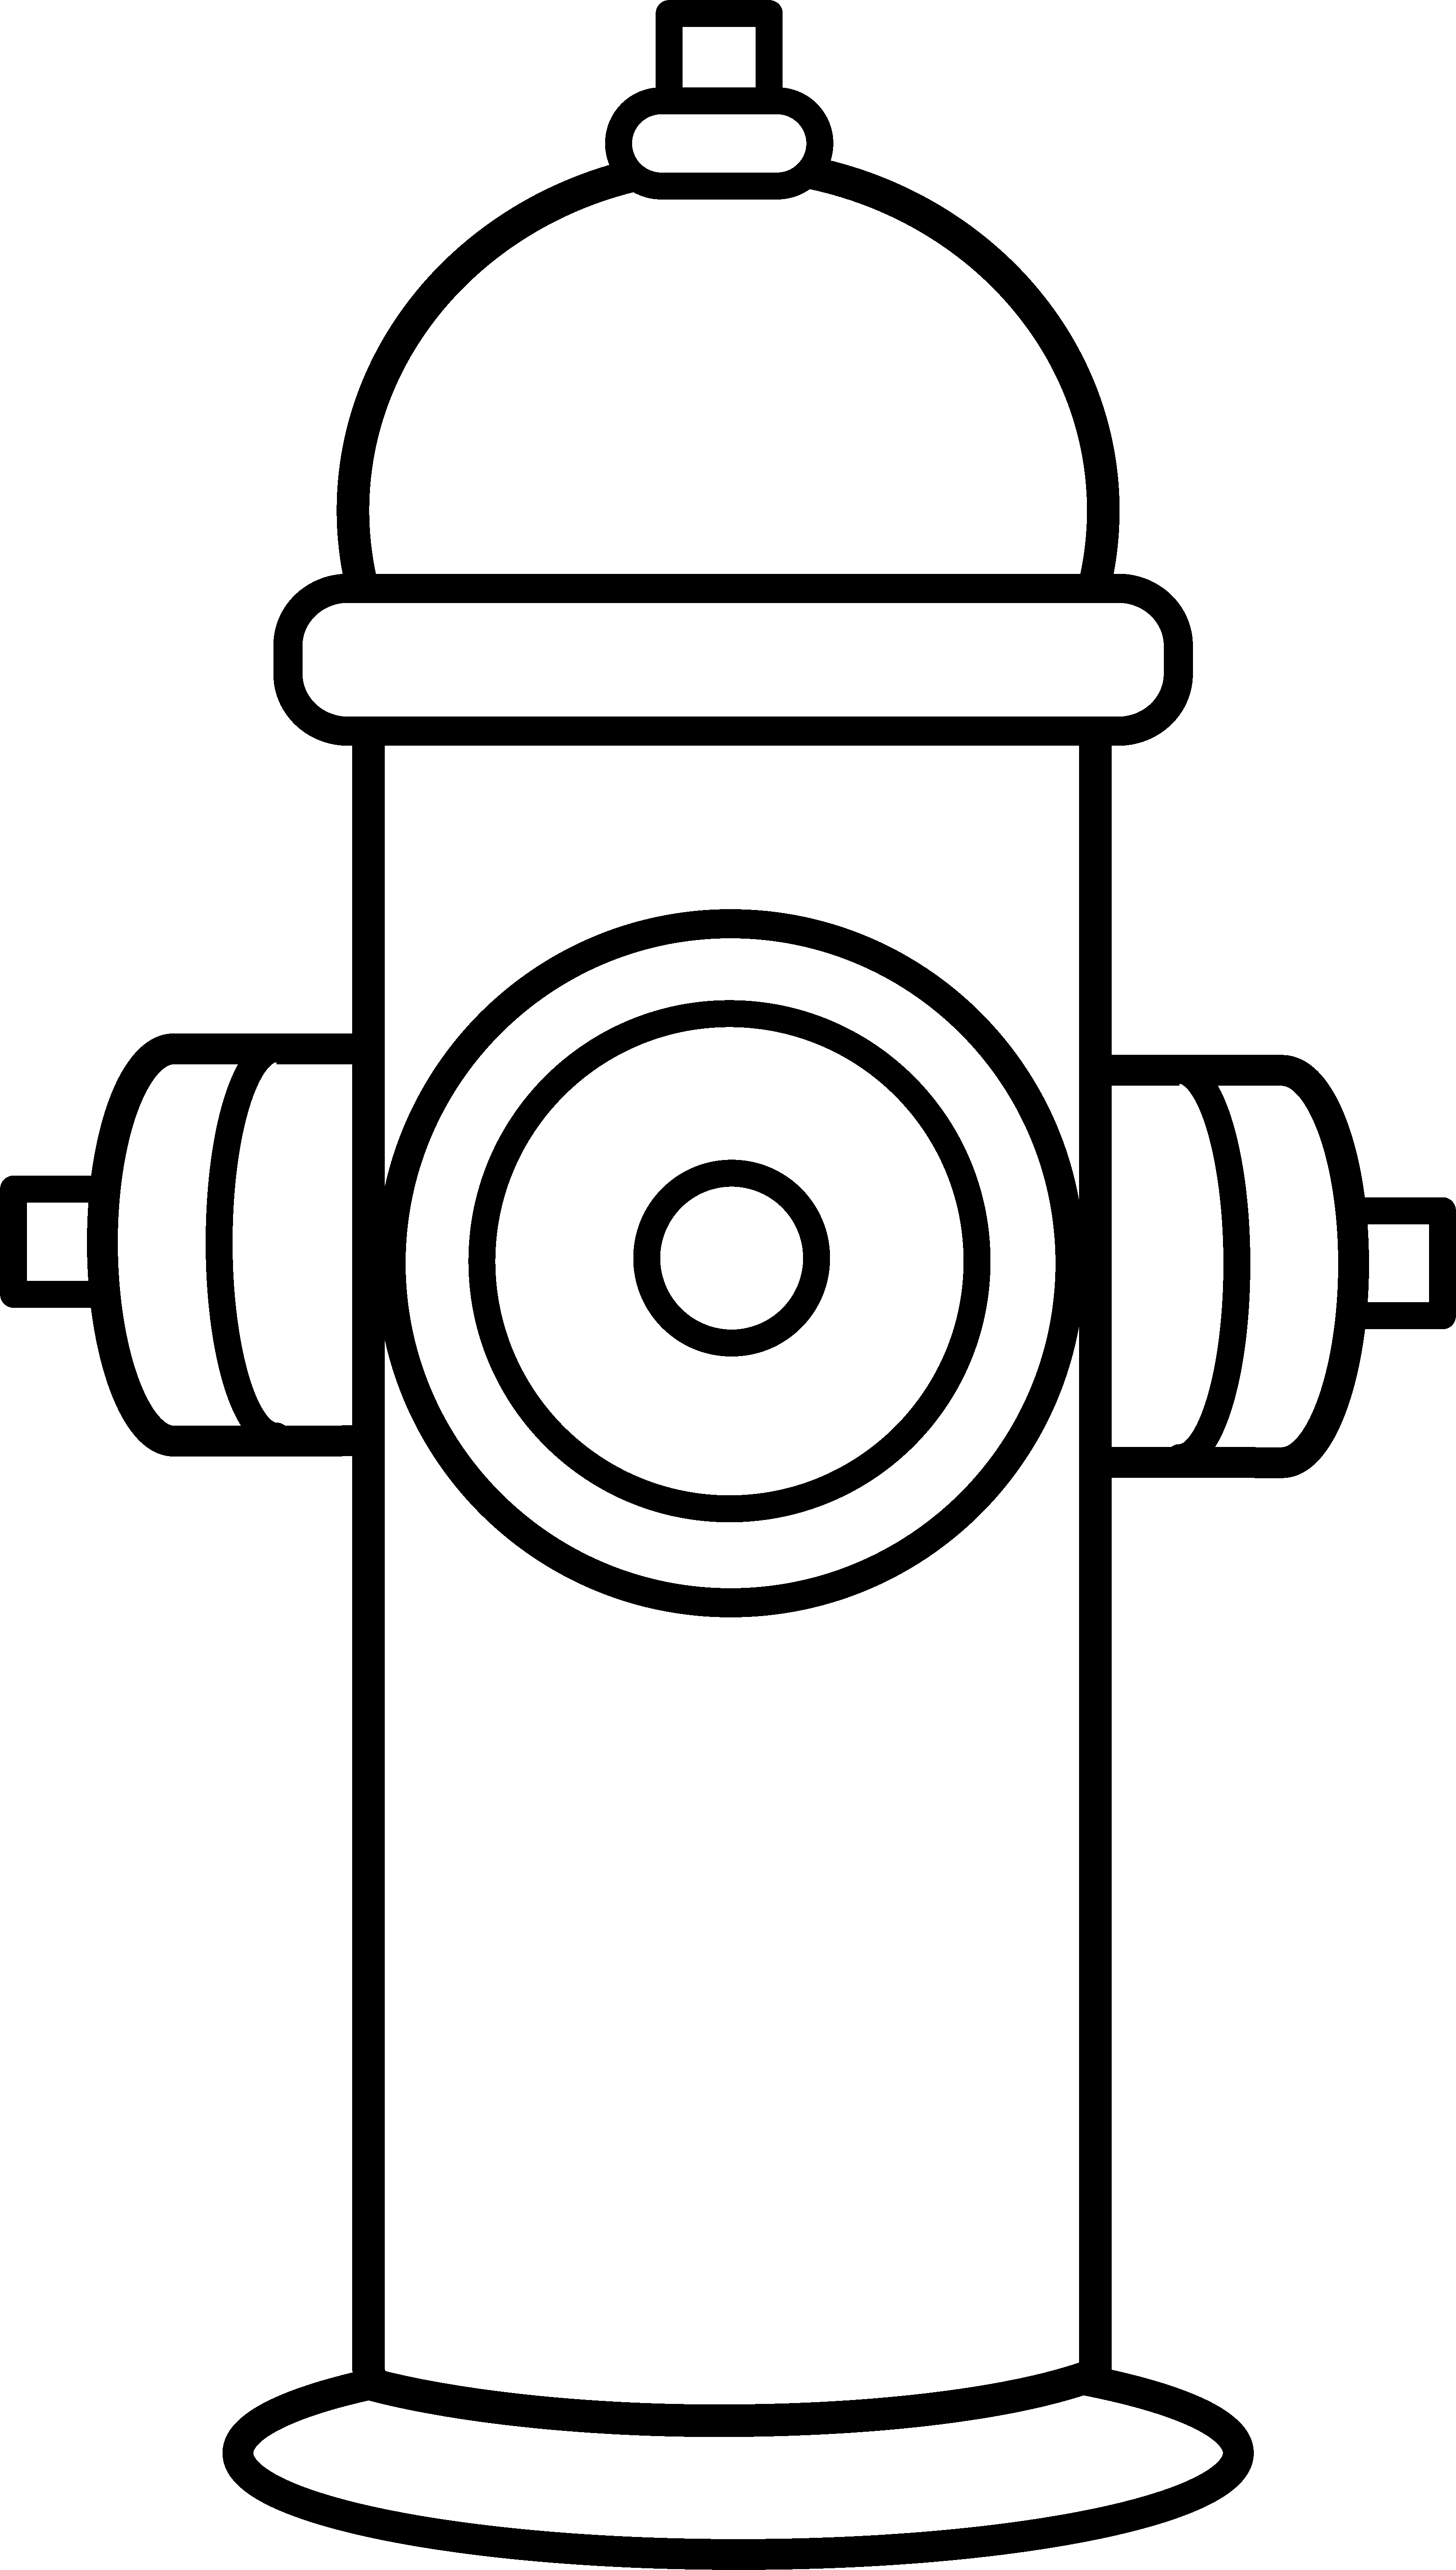 Fire hydrant silhouette at. Clipart puppy firefighter